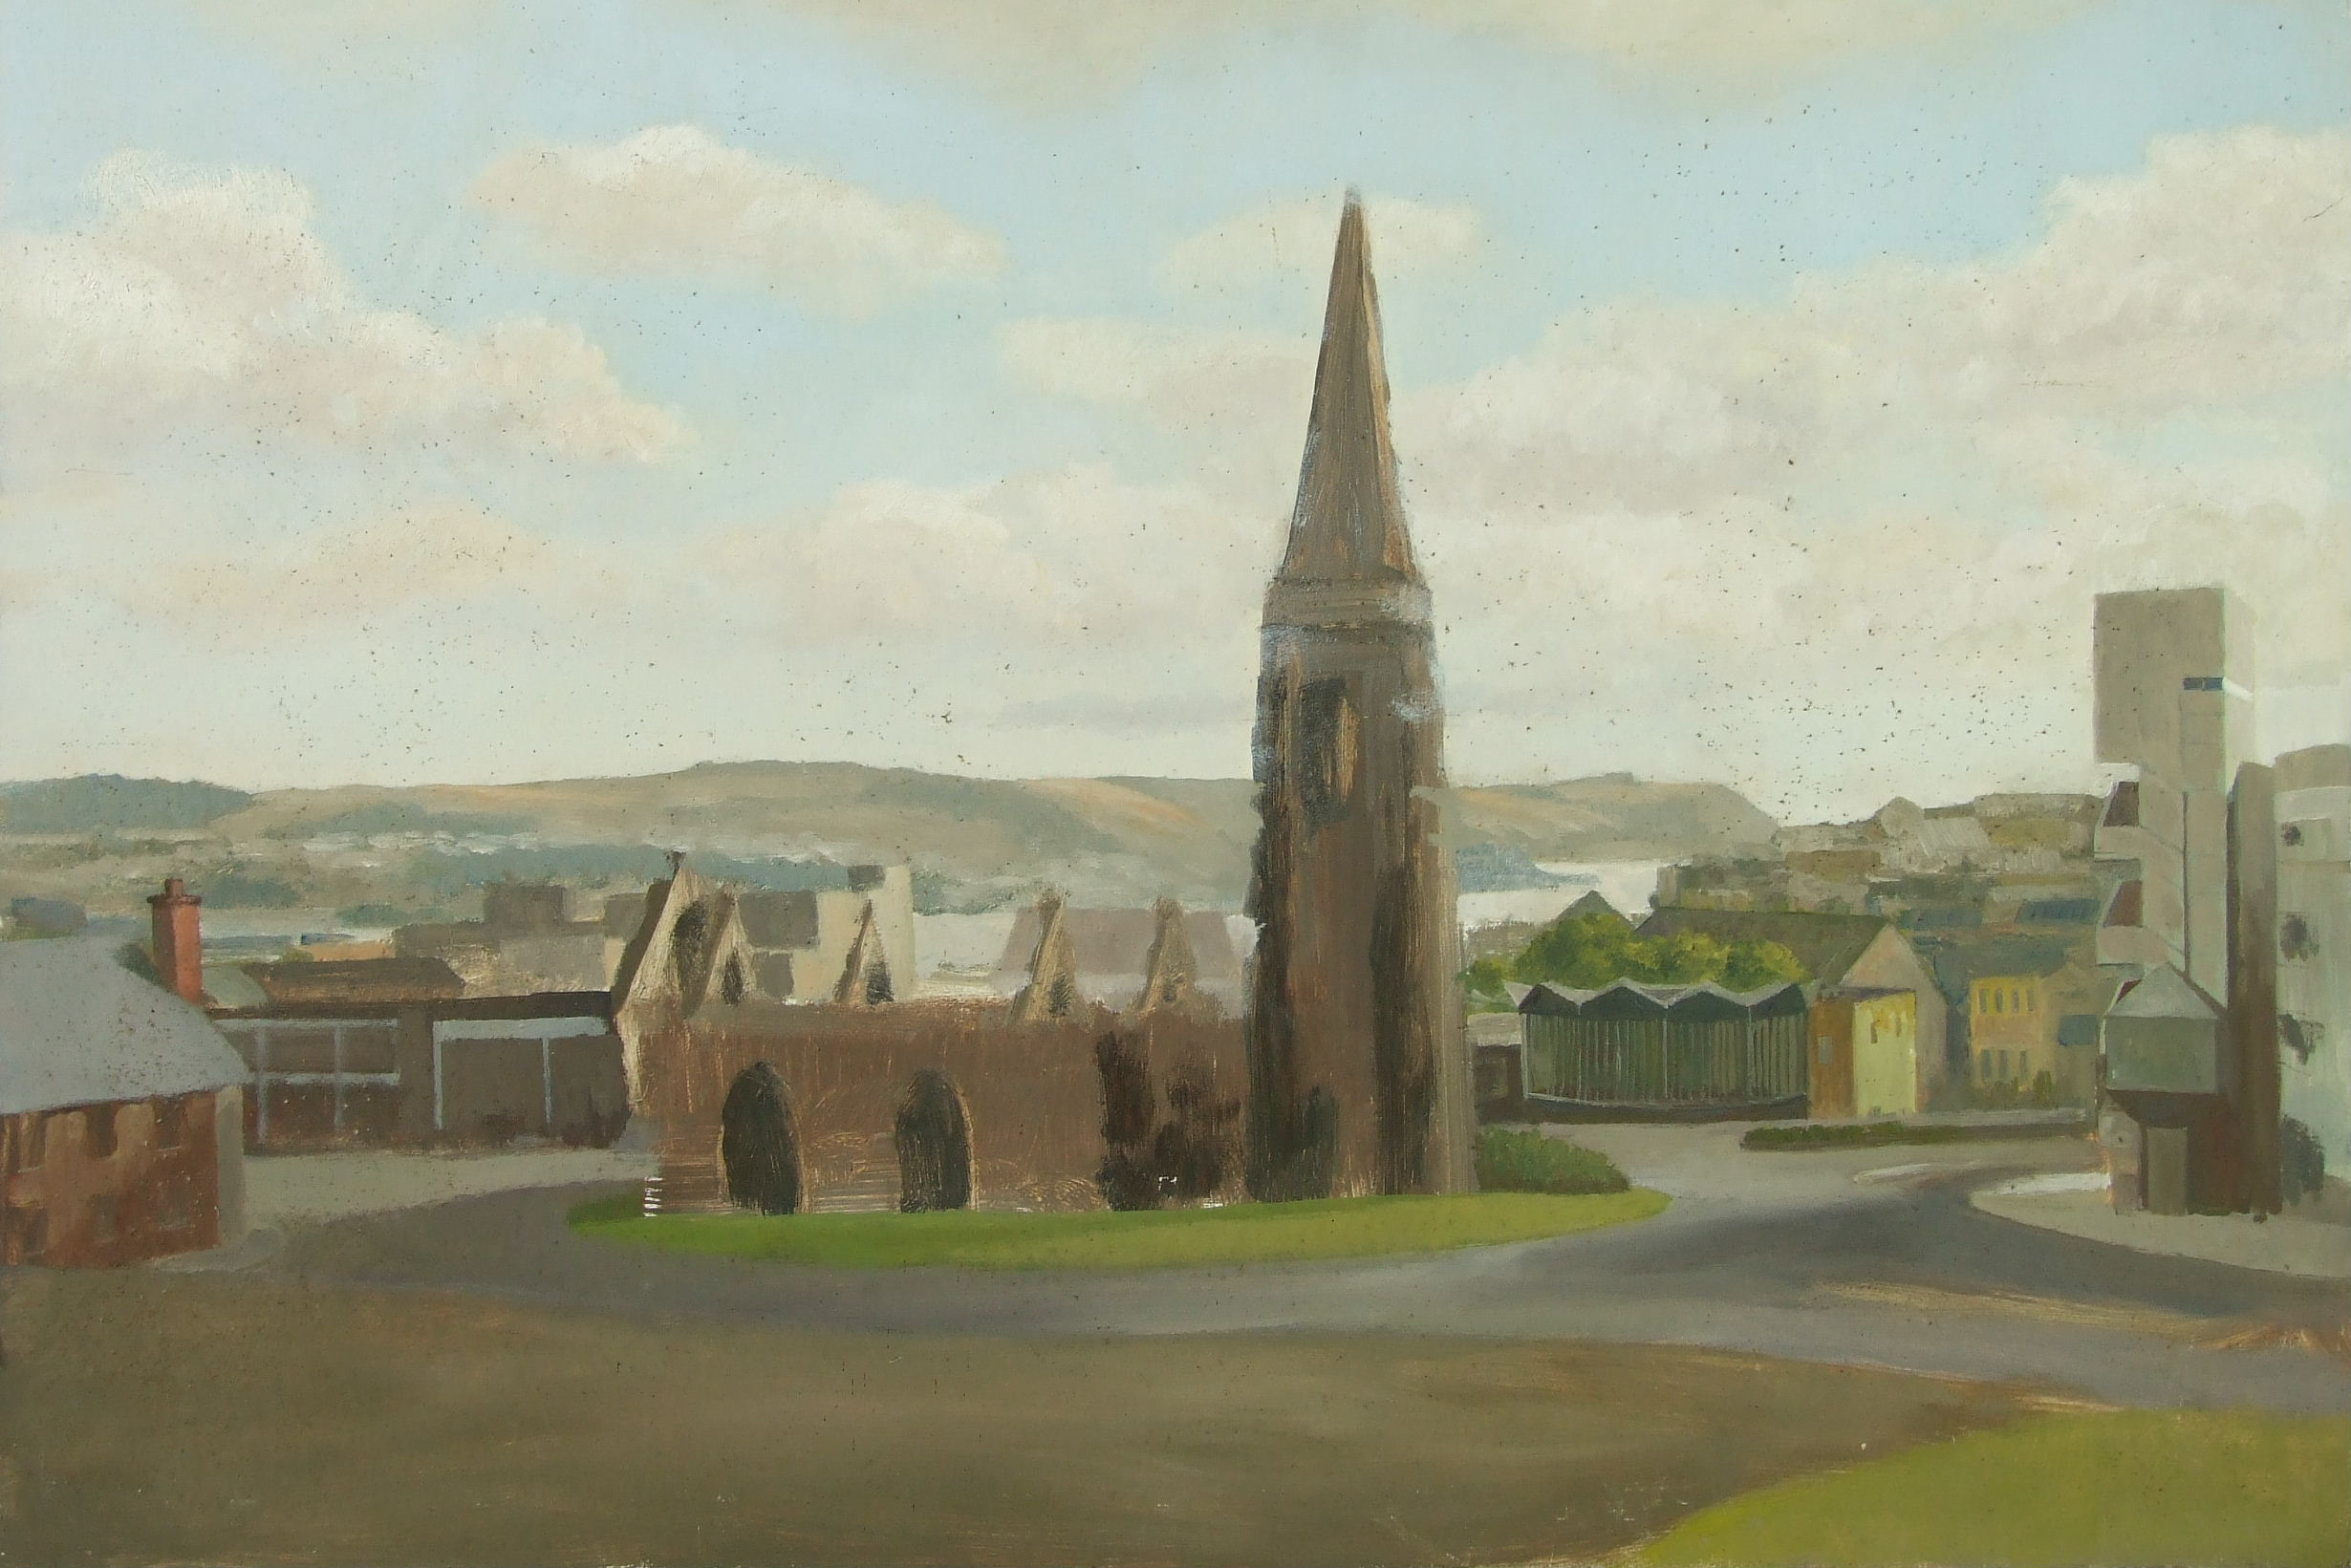 •CHARLES CHURCH, PLYMOUTH Unsigned unframed oil on board, 59.5 x 91cm. - Image 2 of 2